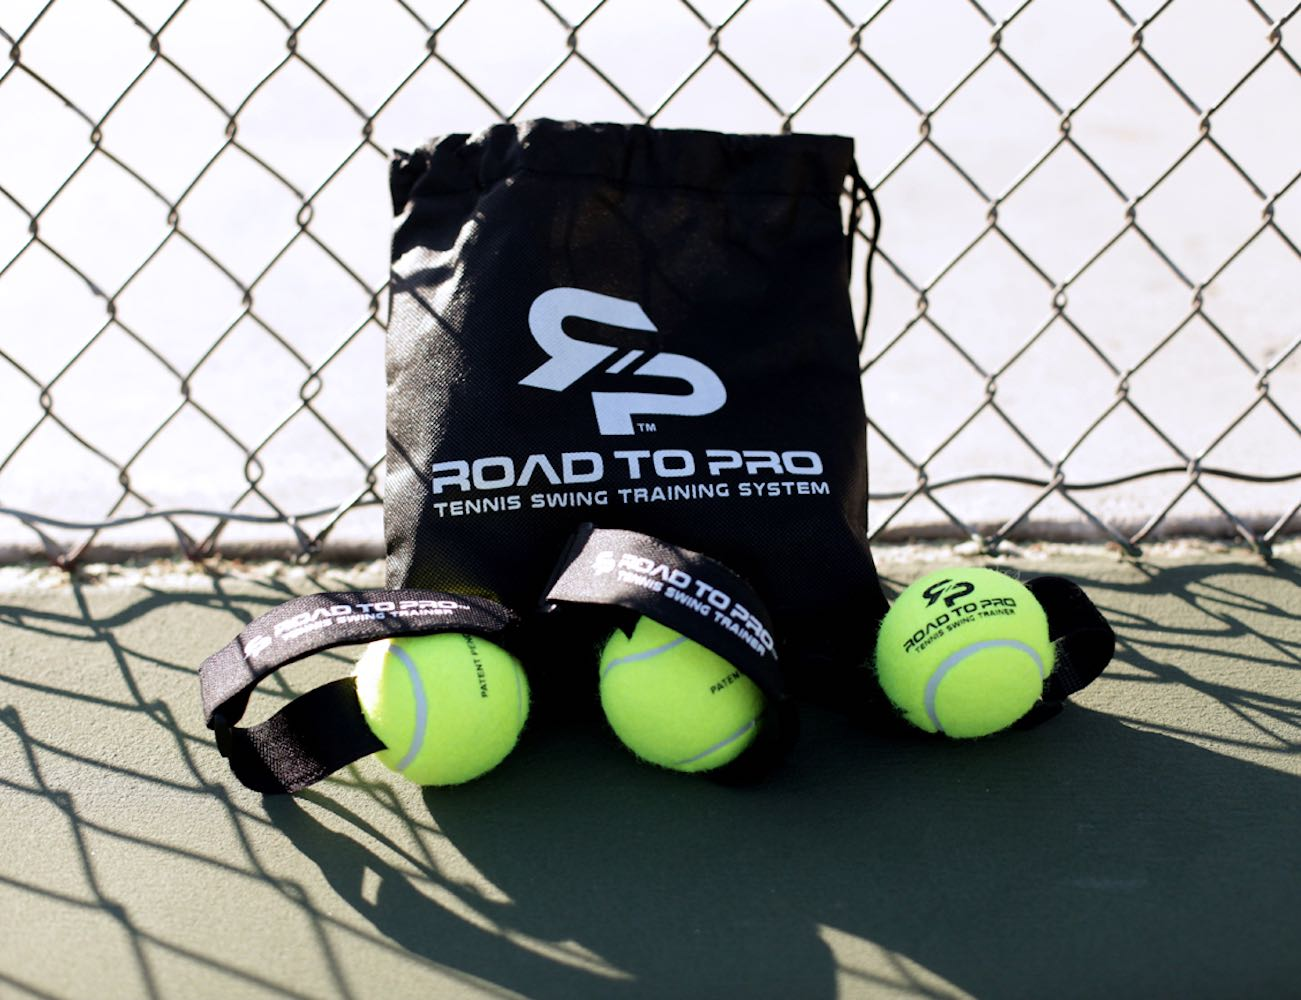 Road to Pro – Tennis Swing Training System